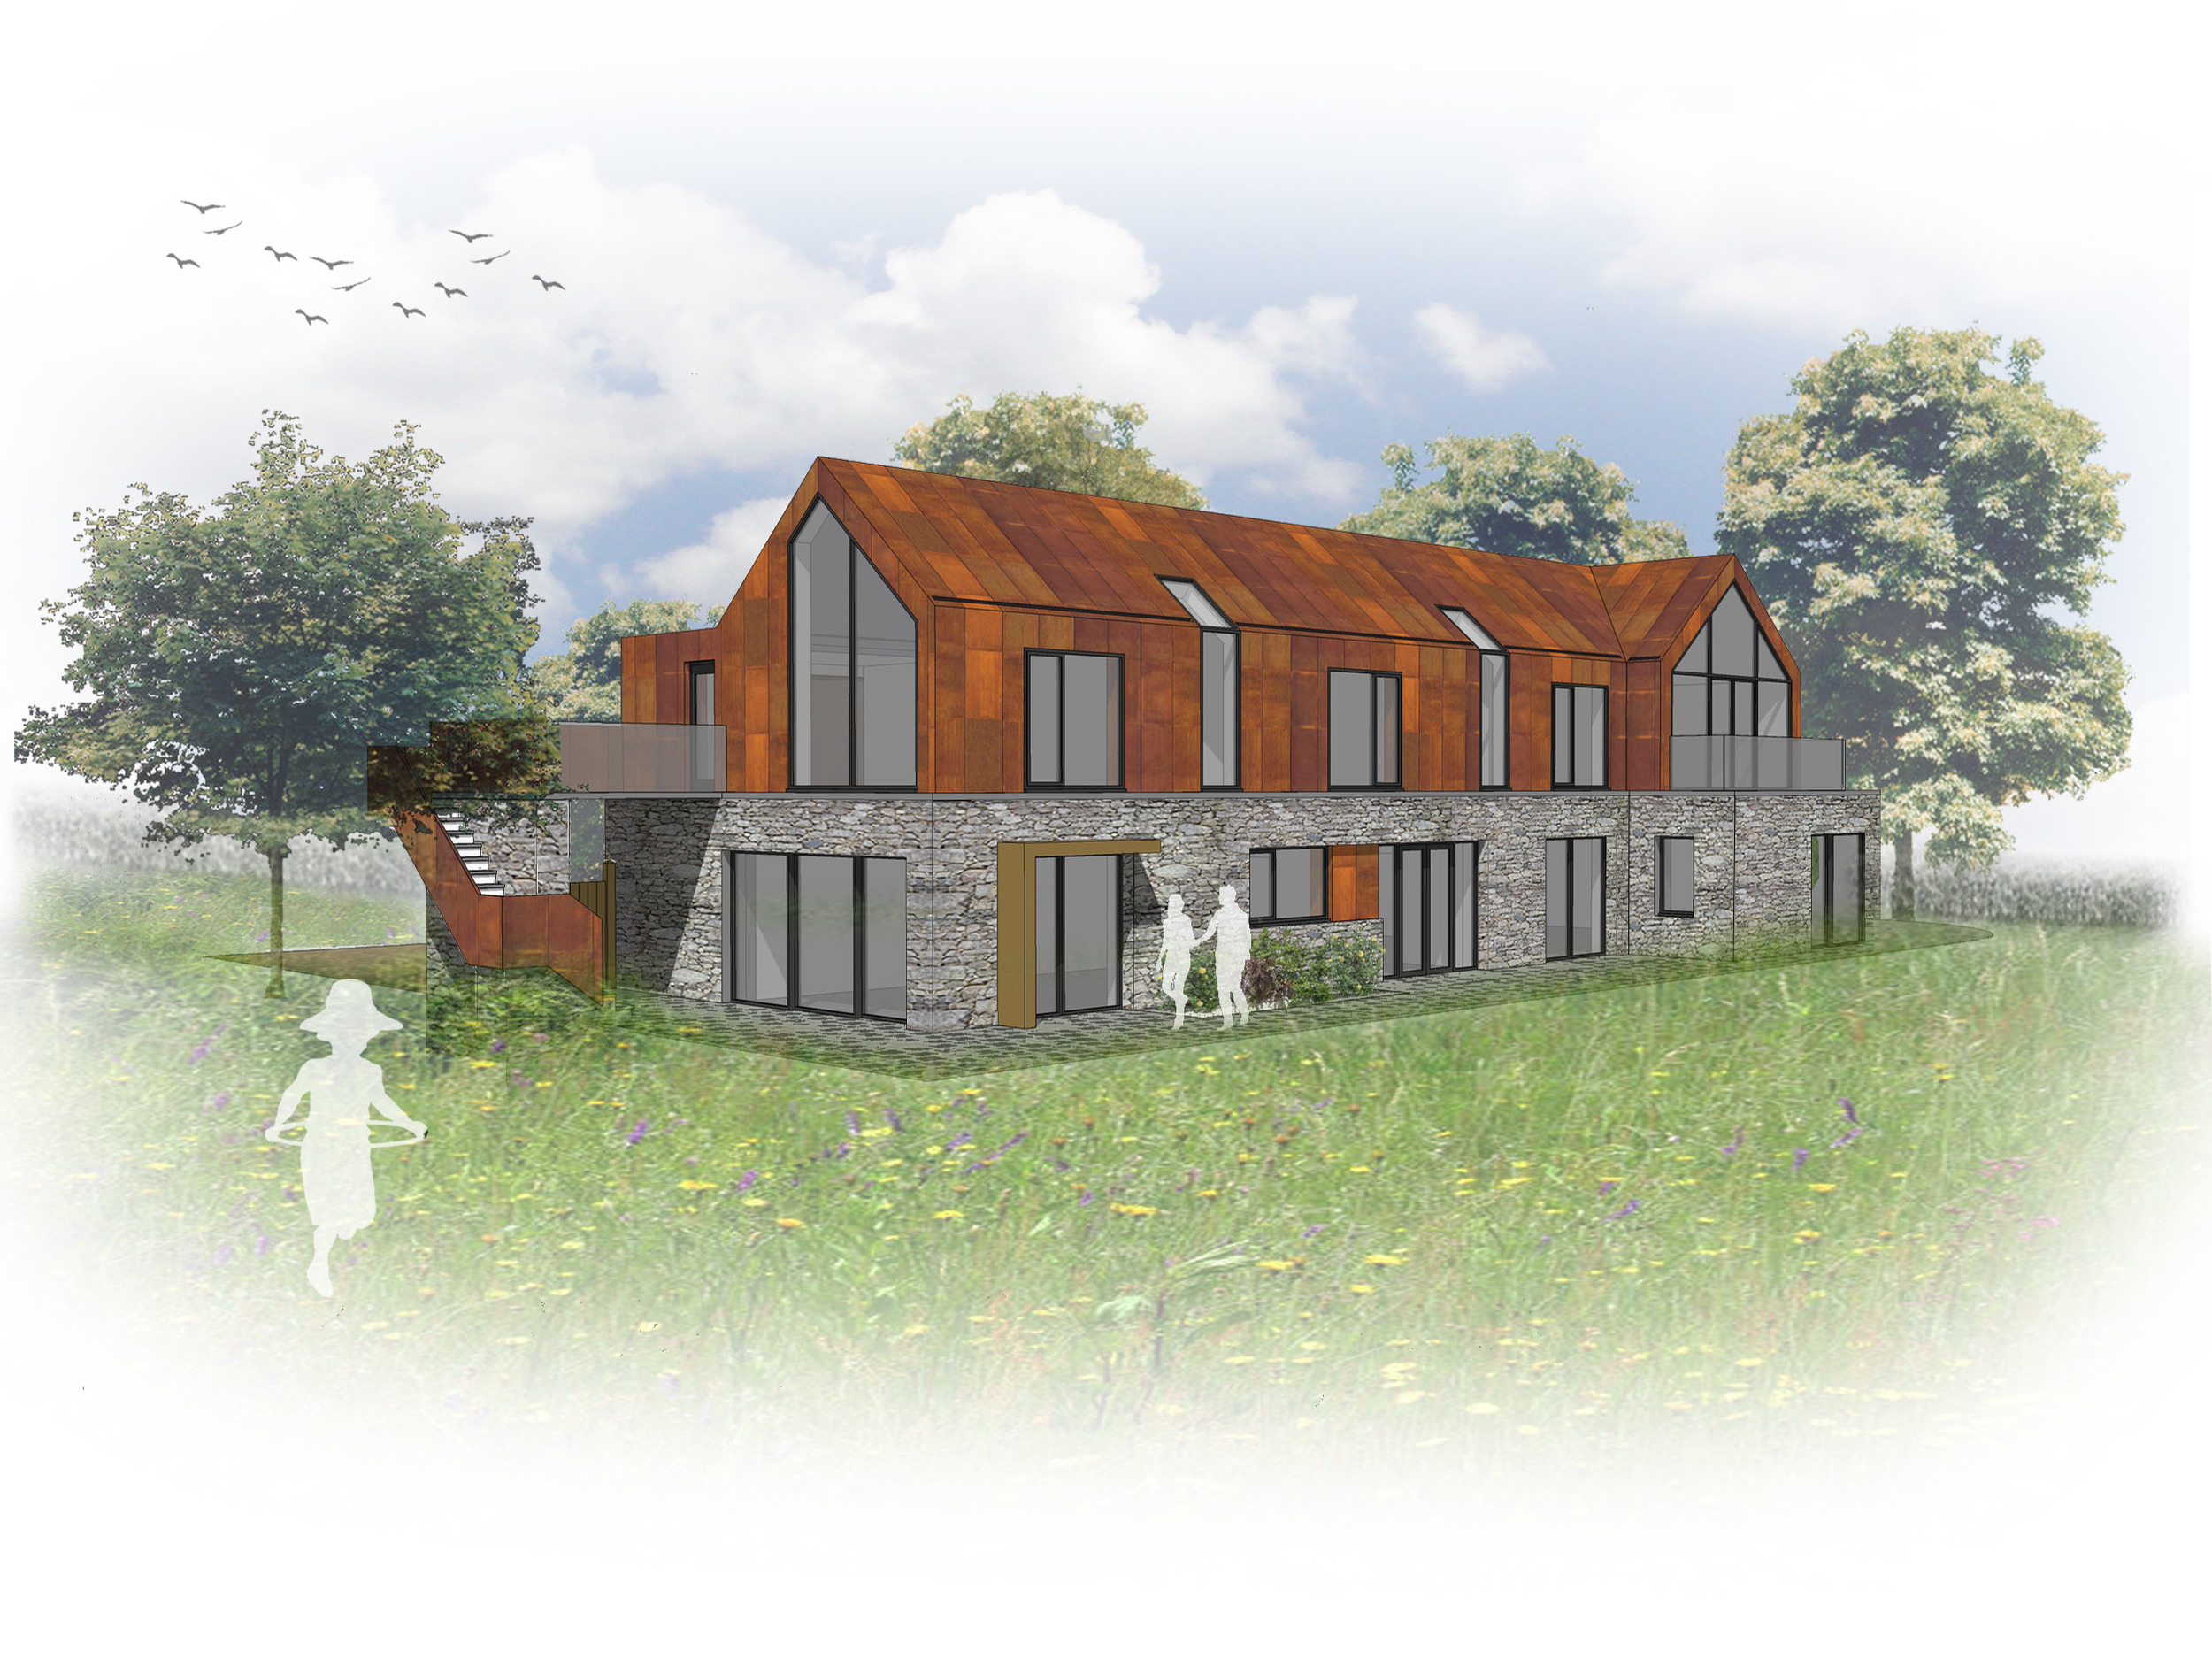 North Yorkshire Replacement Dwelling